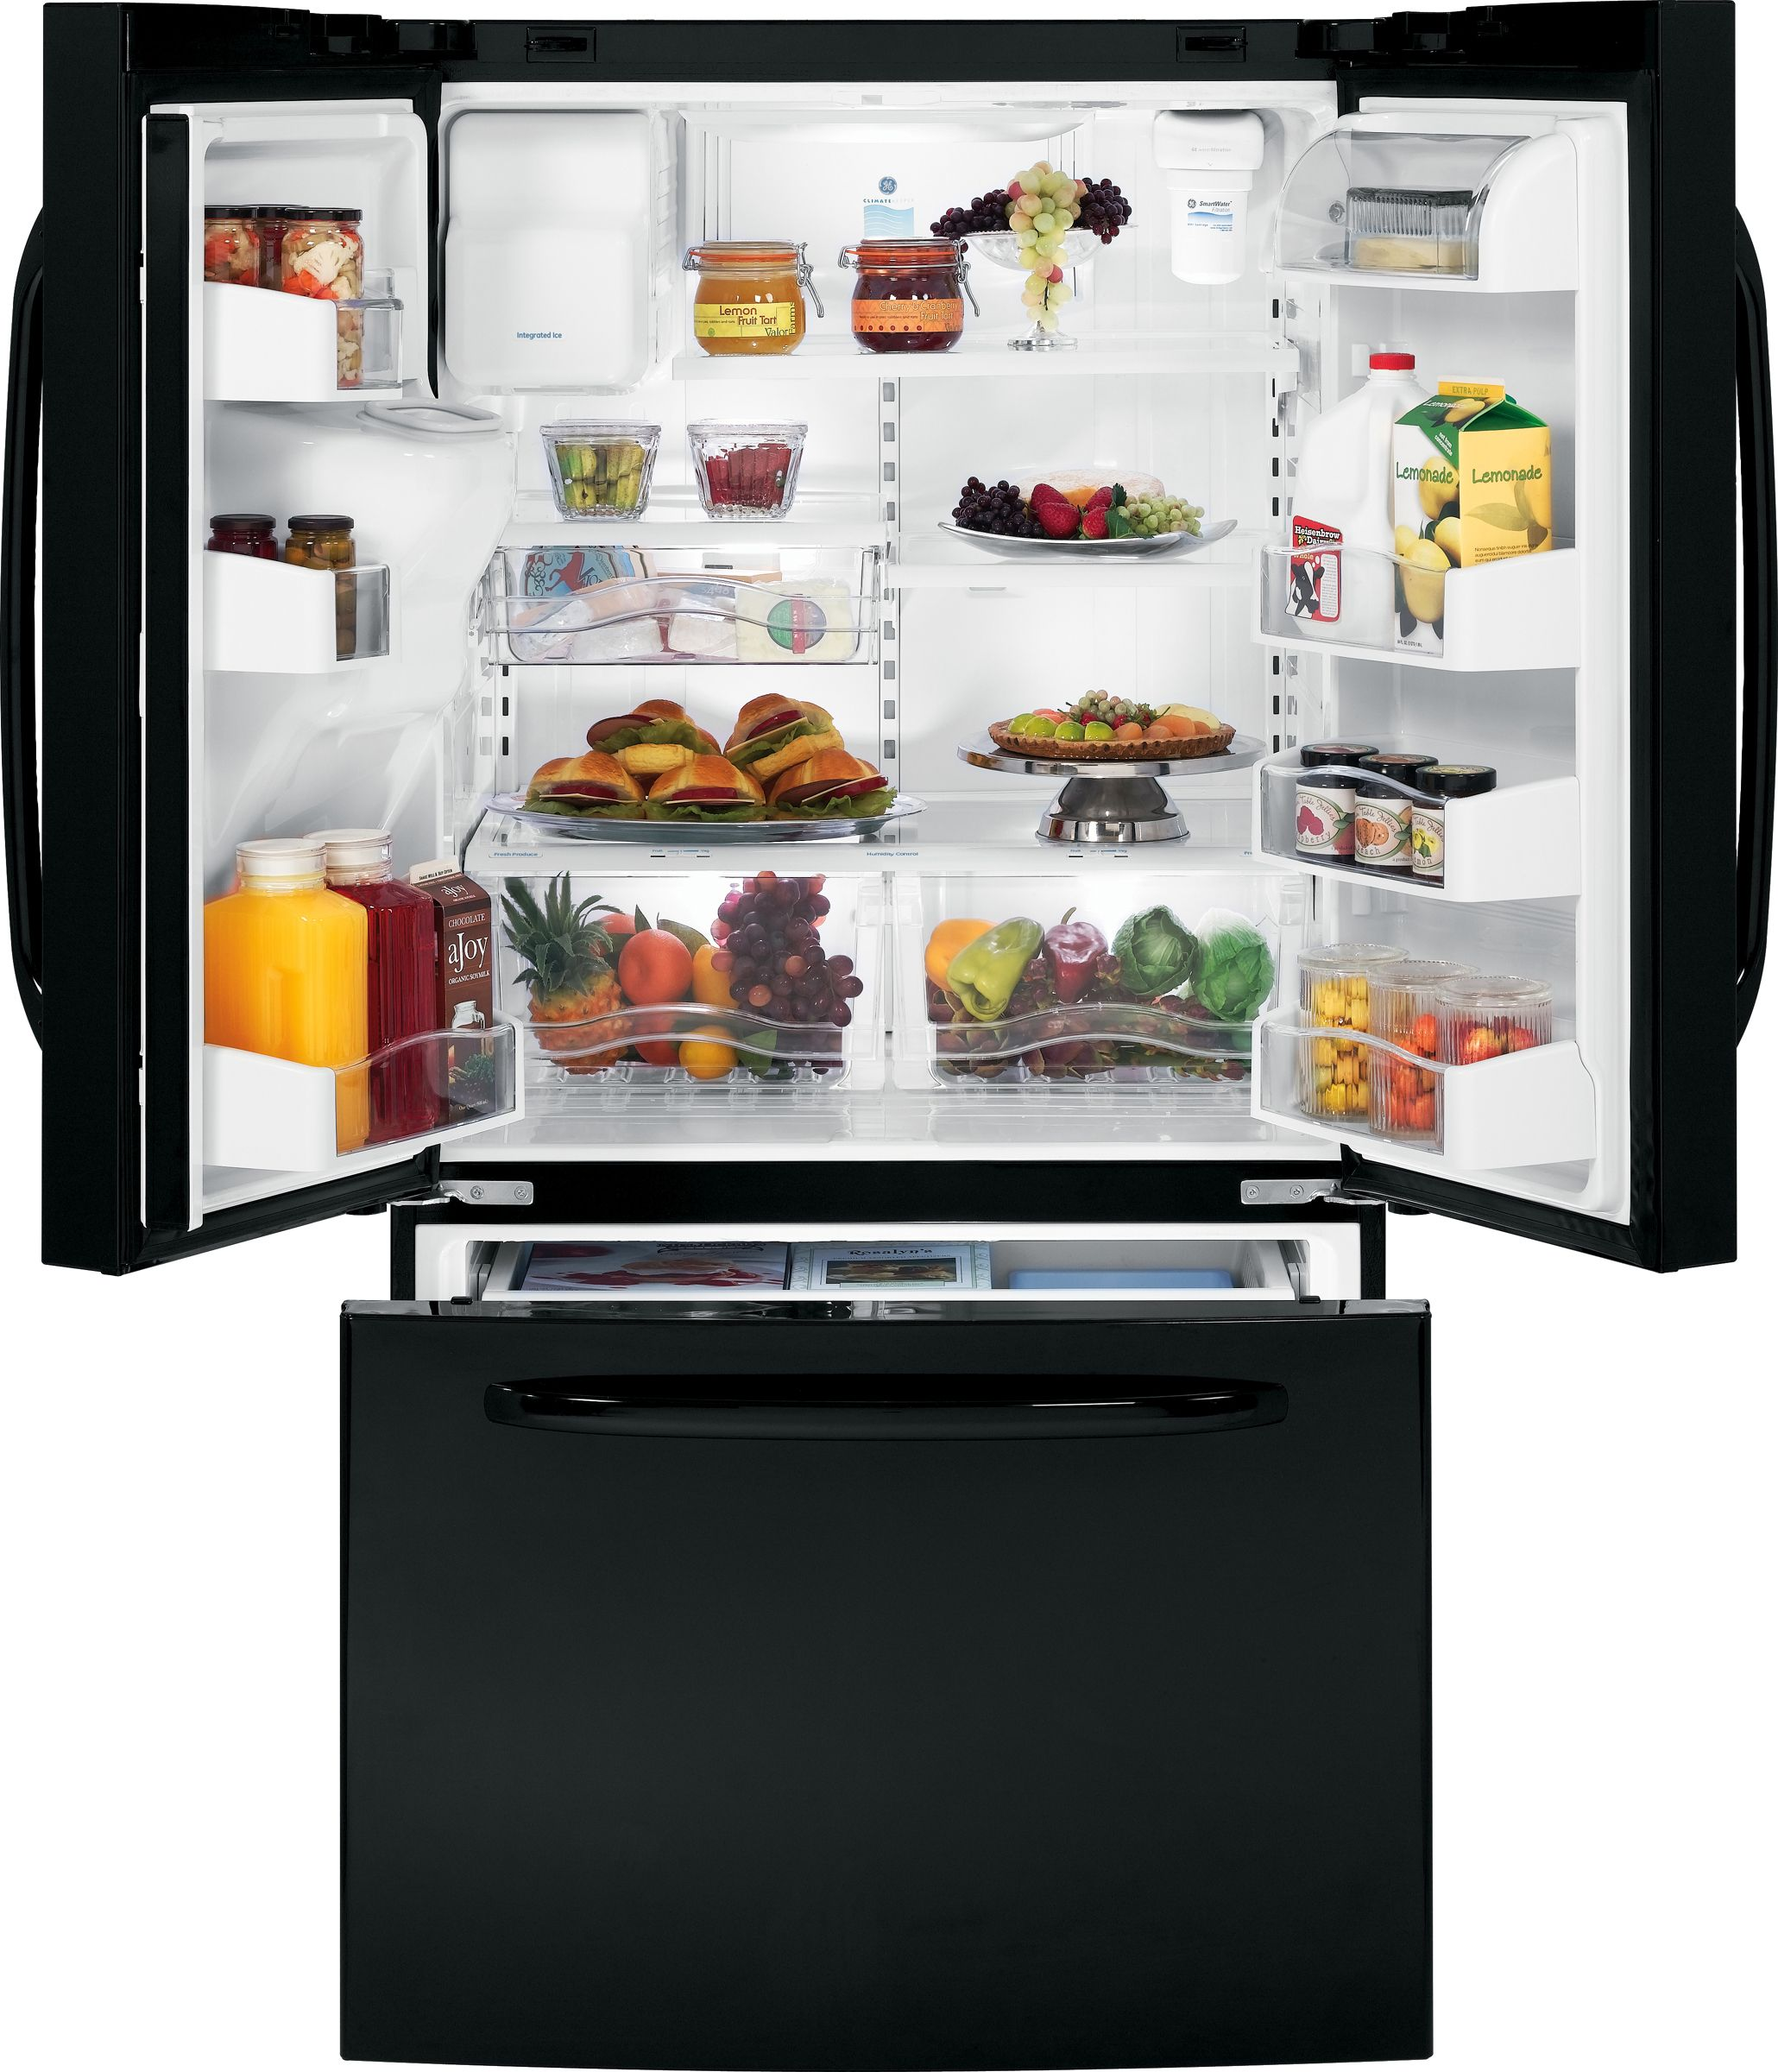 GE 25.8 cu. ft. French-Door Bottom-Freezer Refrigerator